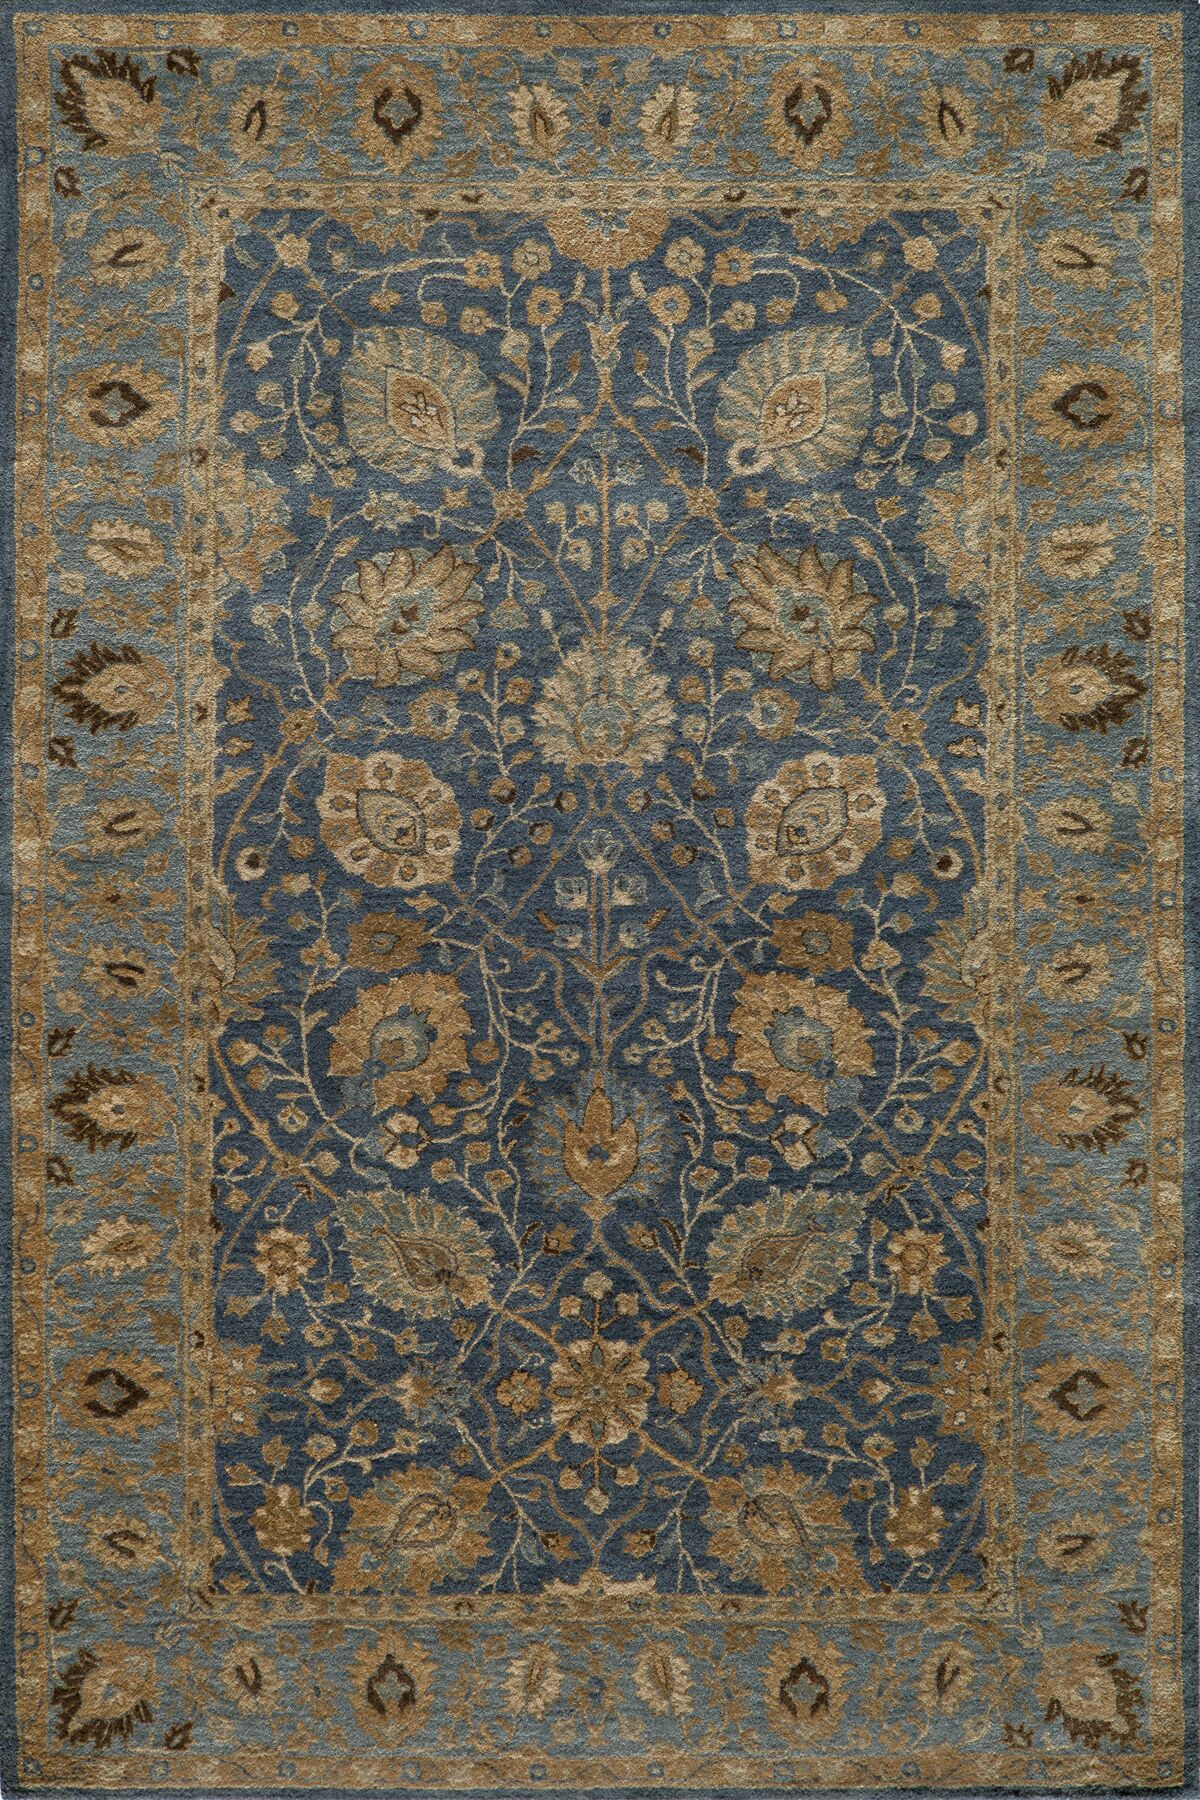 Dearborn Hand-Tufted Blue/Ivory Area Rug Rug Size: Rectangle 9'6